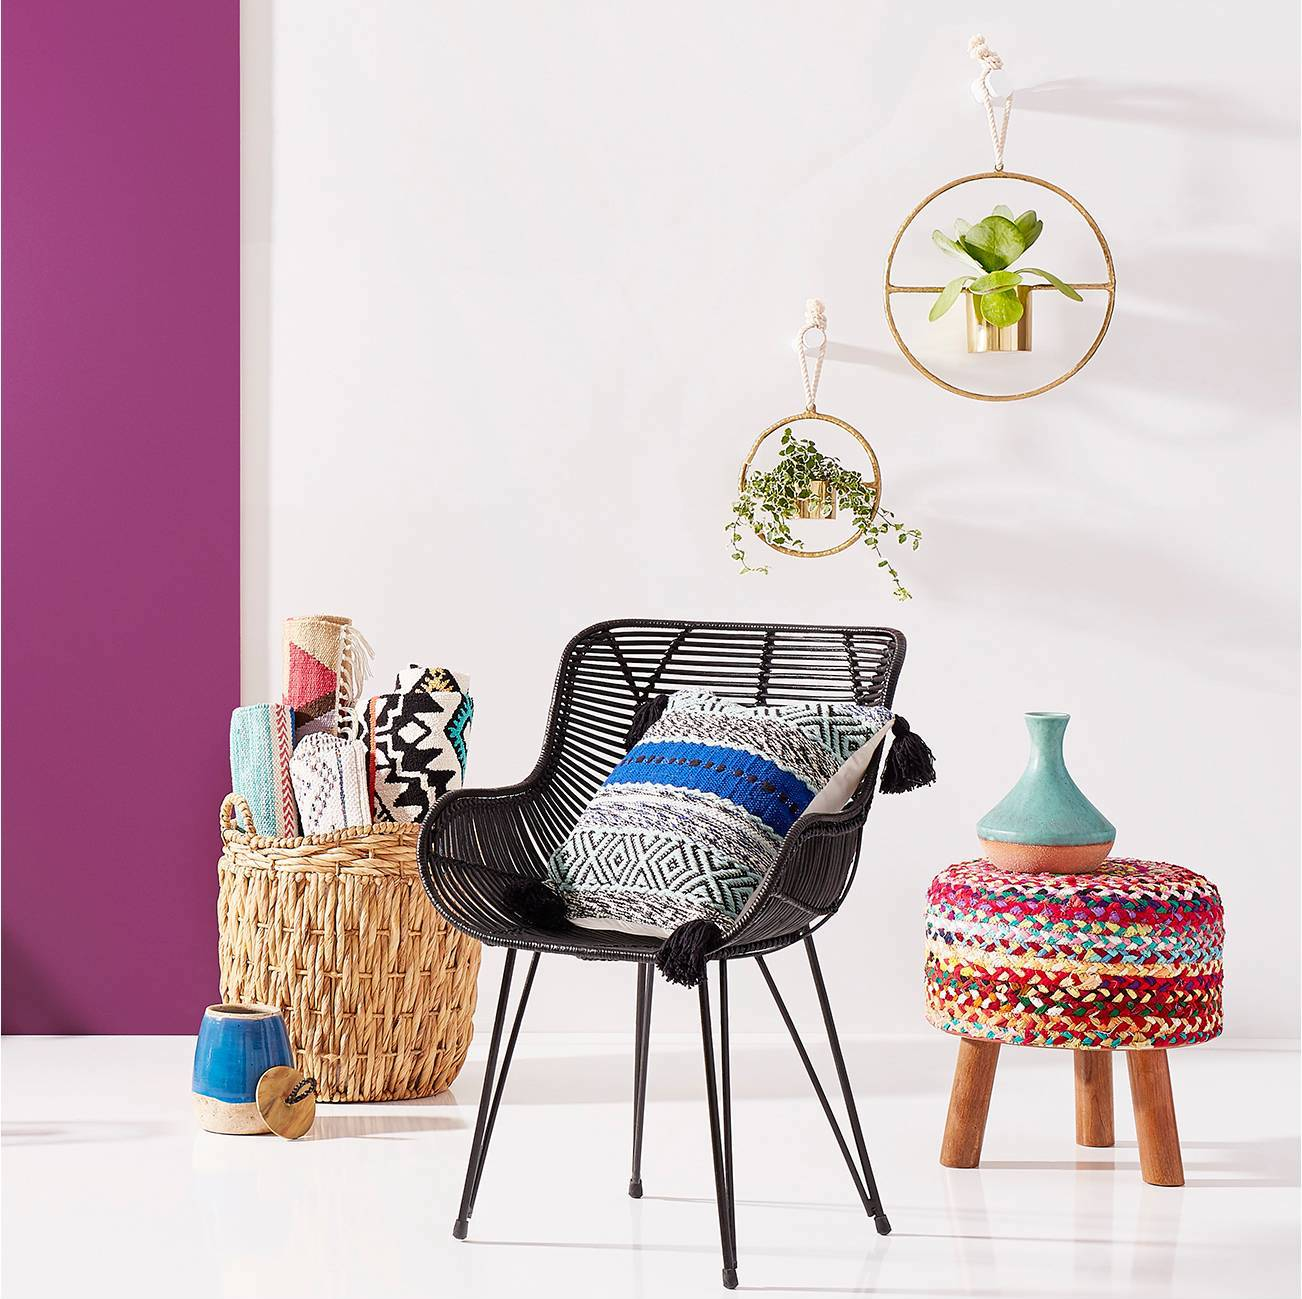 Target Home Furnishings: Add A Pop Of Color To Your Home • The Naptime Reviewer